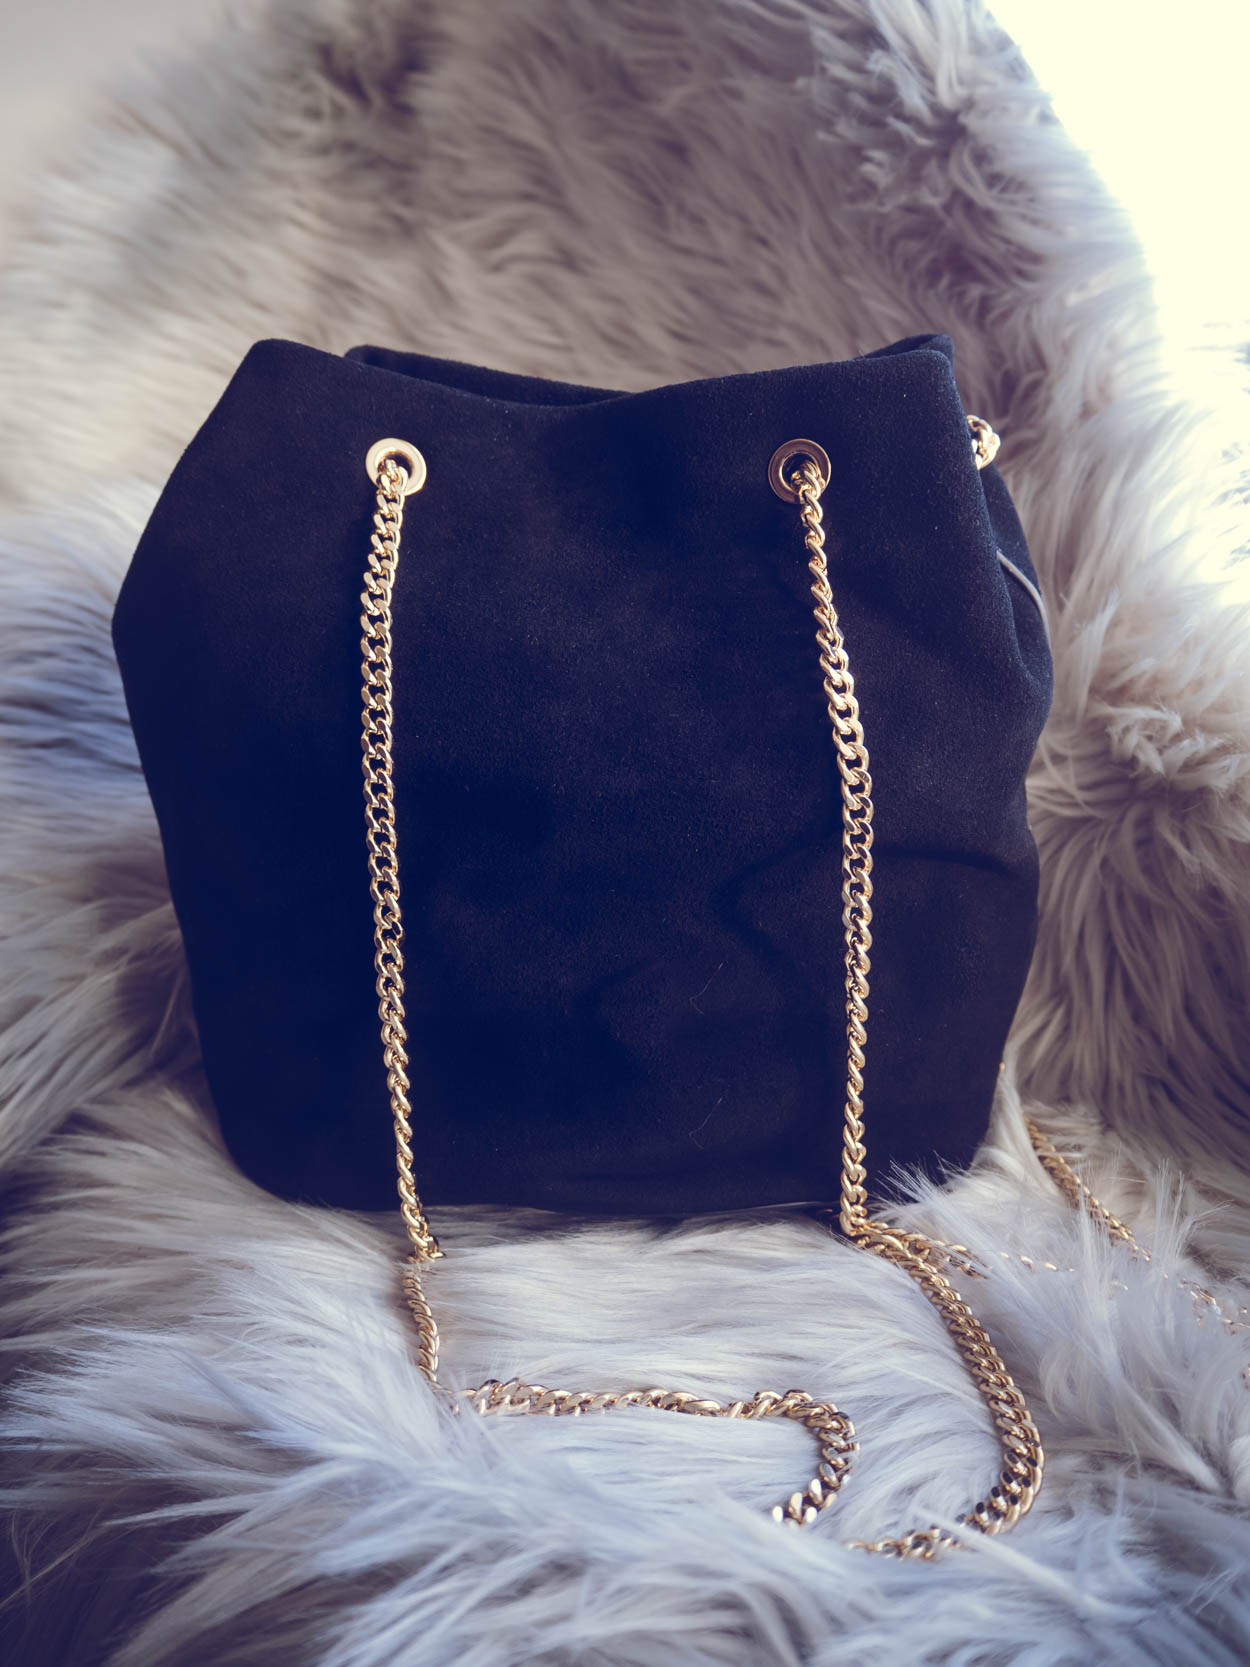 5 CHIC AFFORDABLE BLACK FALL BAGS THAT LOOK LUXURIOUS | THECHICITALIAN | My top high street fall bag choices that look as expensive as a designer bag